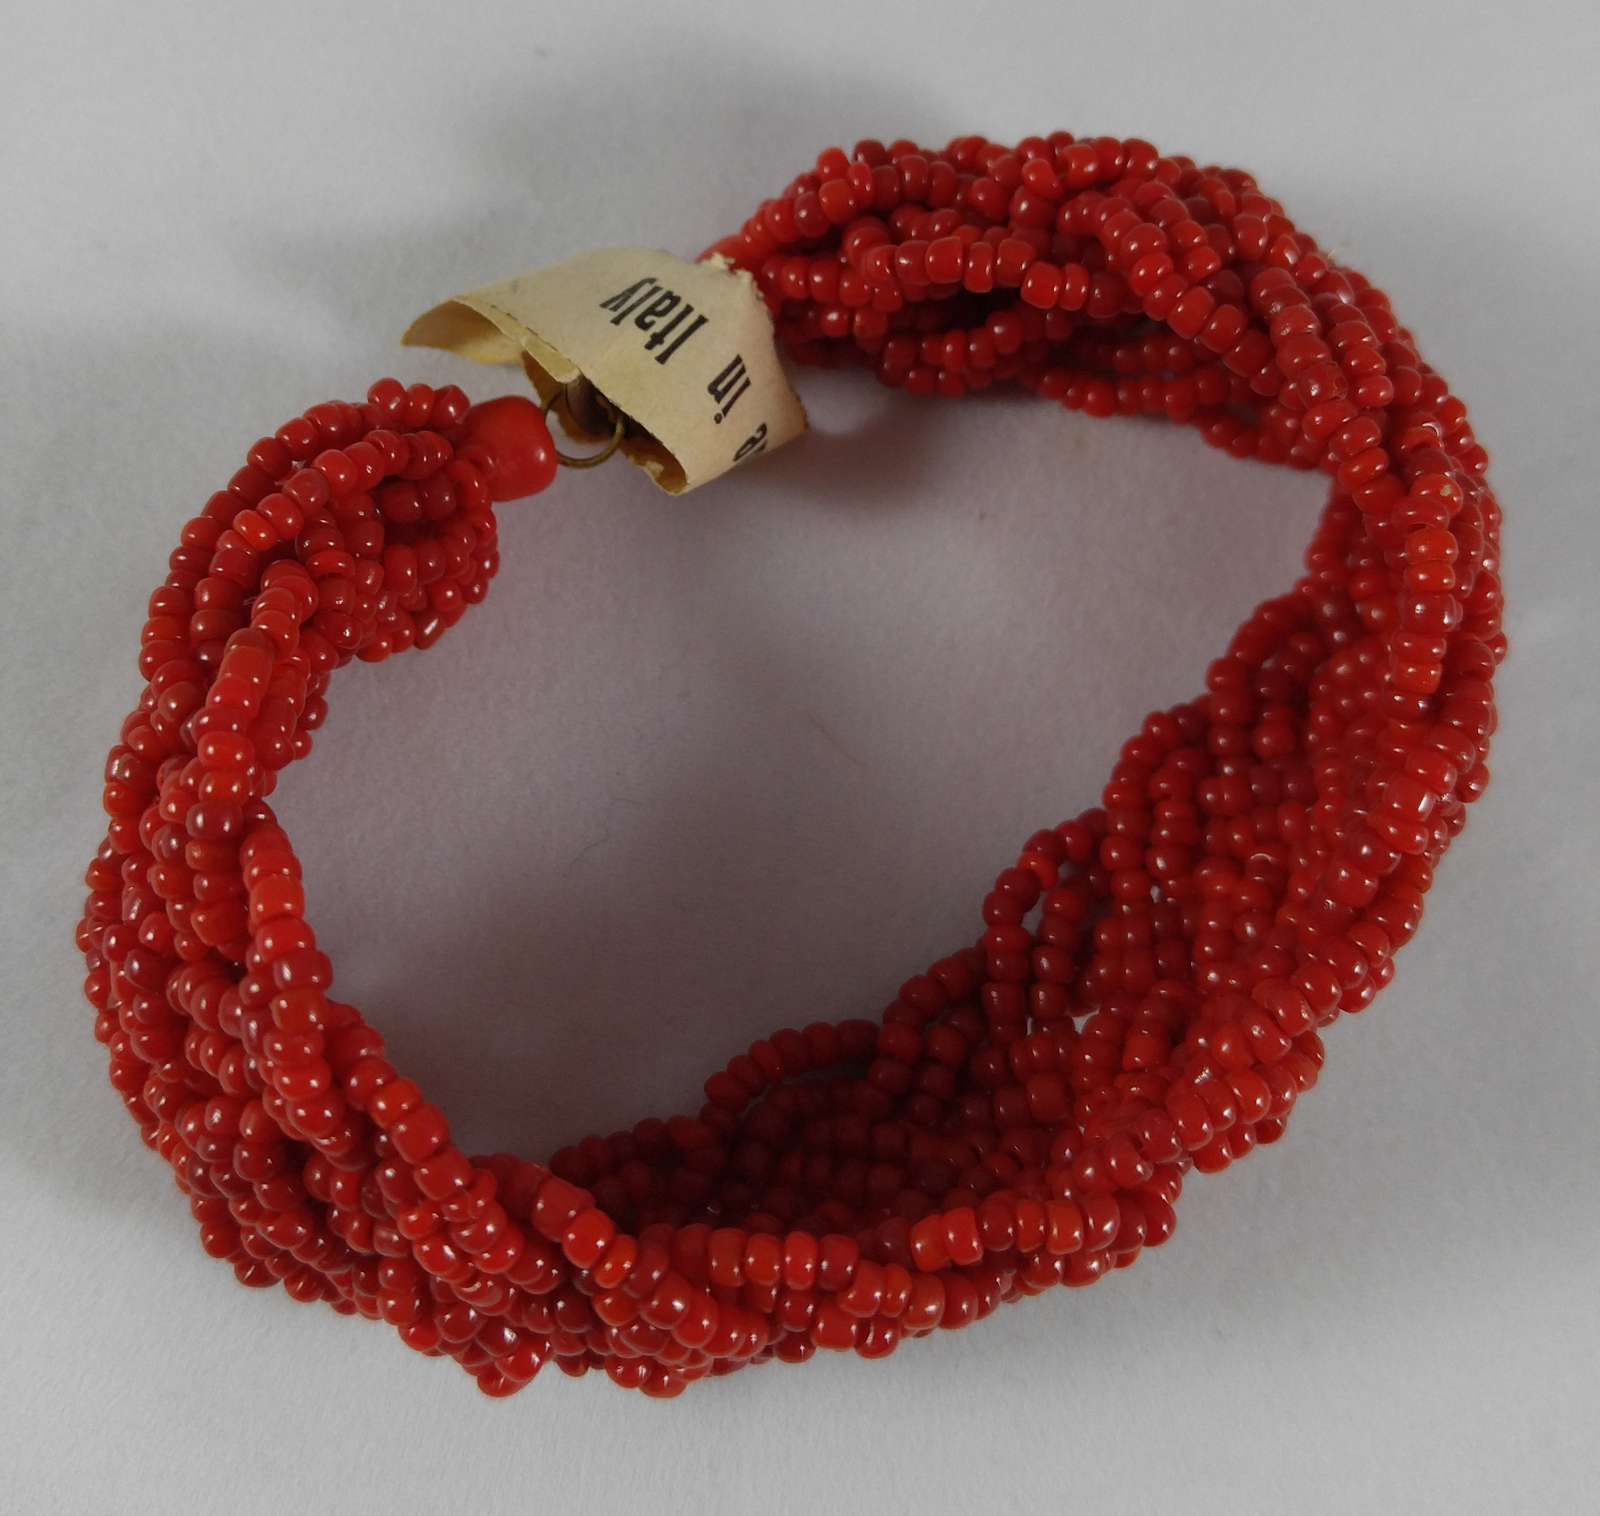 Rare Vintage 1950s Braided Coral Red Venetian Glass Seed Bead Bracelet Italy